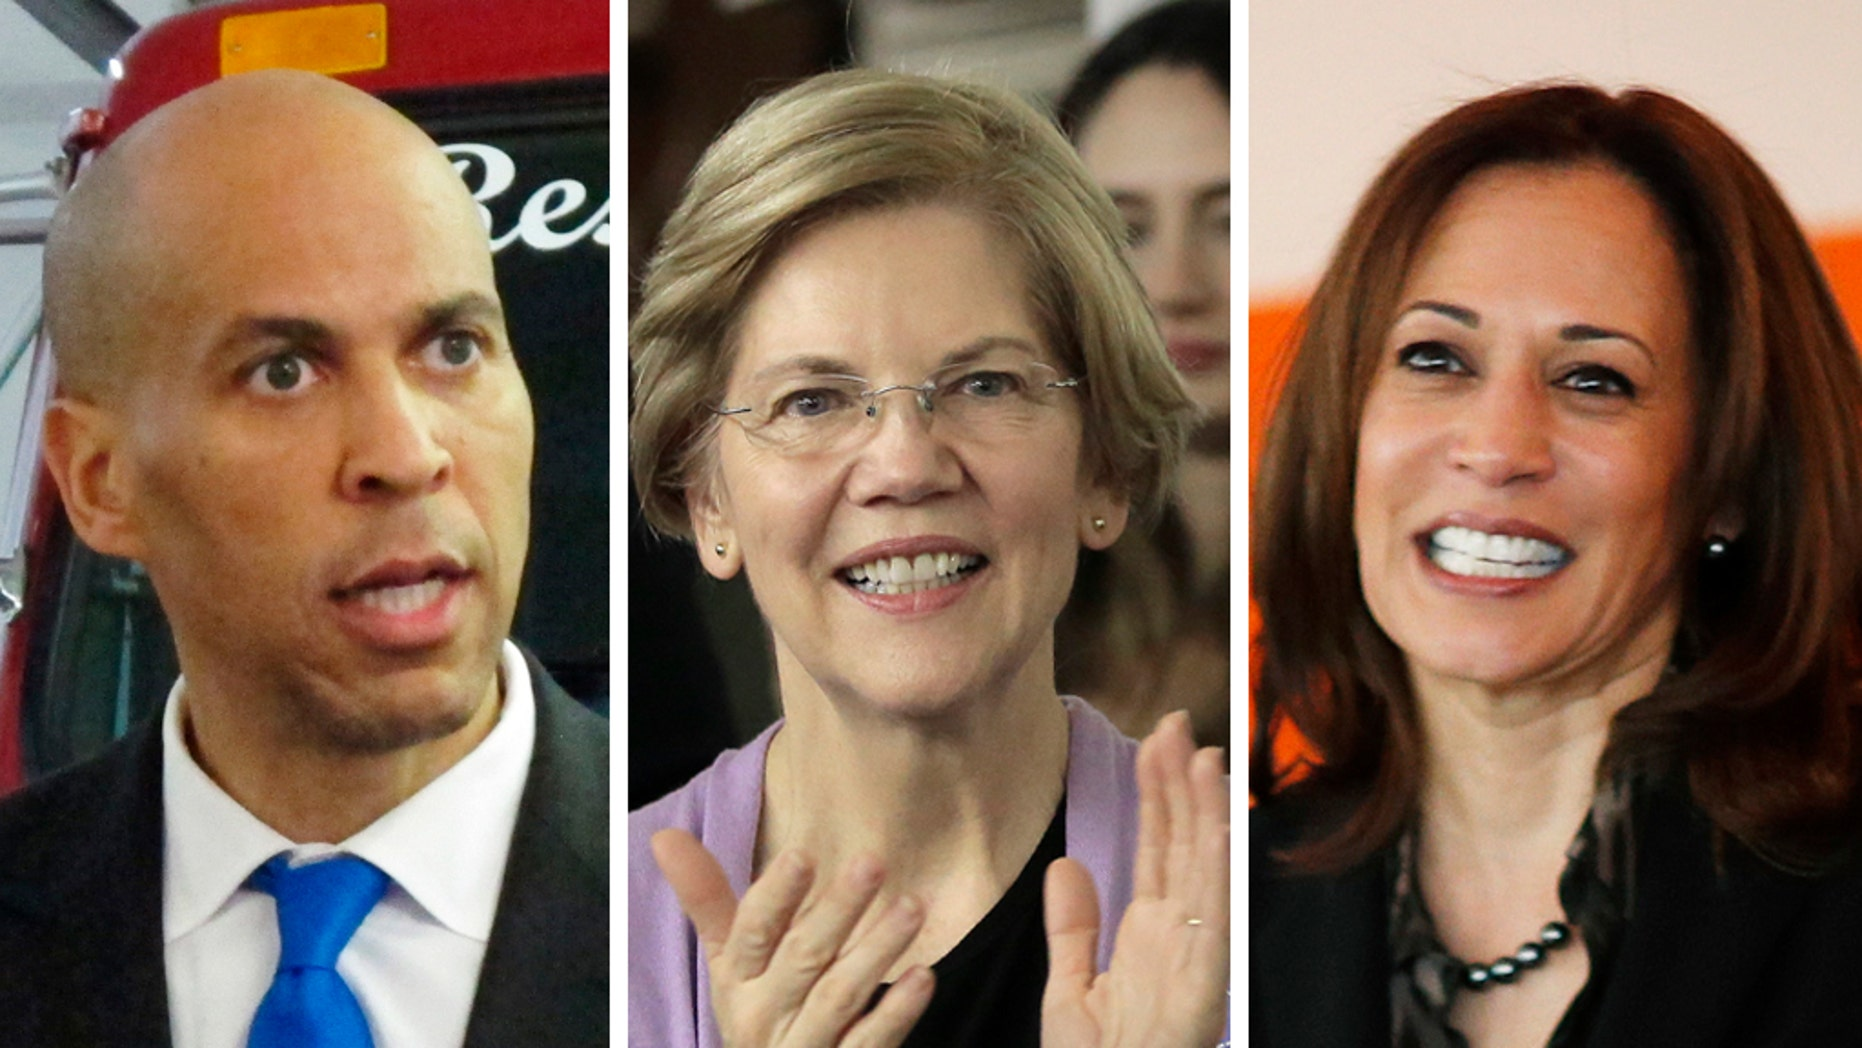 Massachusetts Sen. Elizabeth Warren, New Jersey Sen. Cory Booker and California Sen. Kamala Harris are among a slew of possible 2020 presidential contenders.